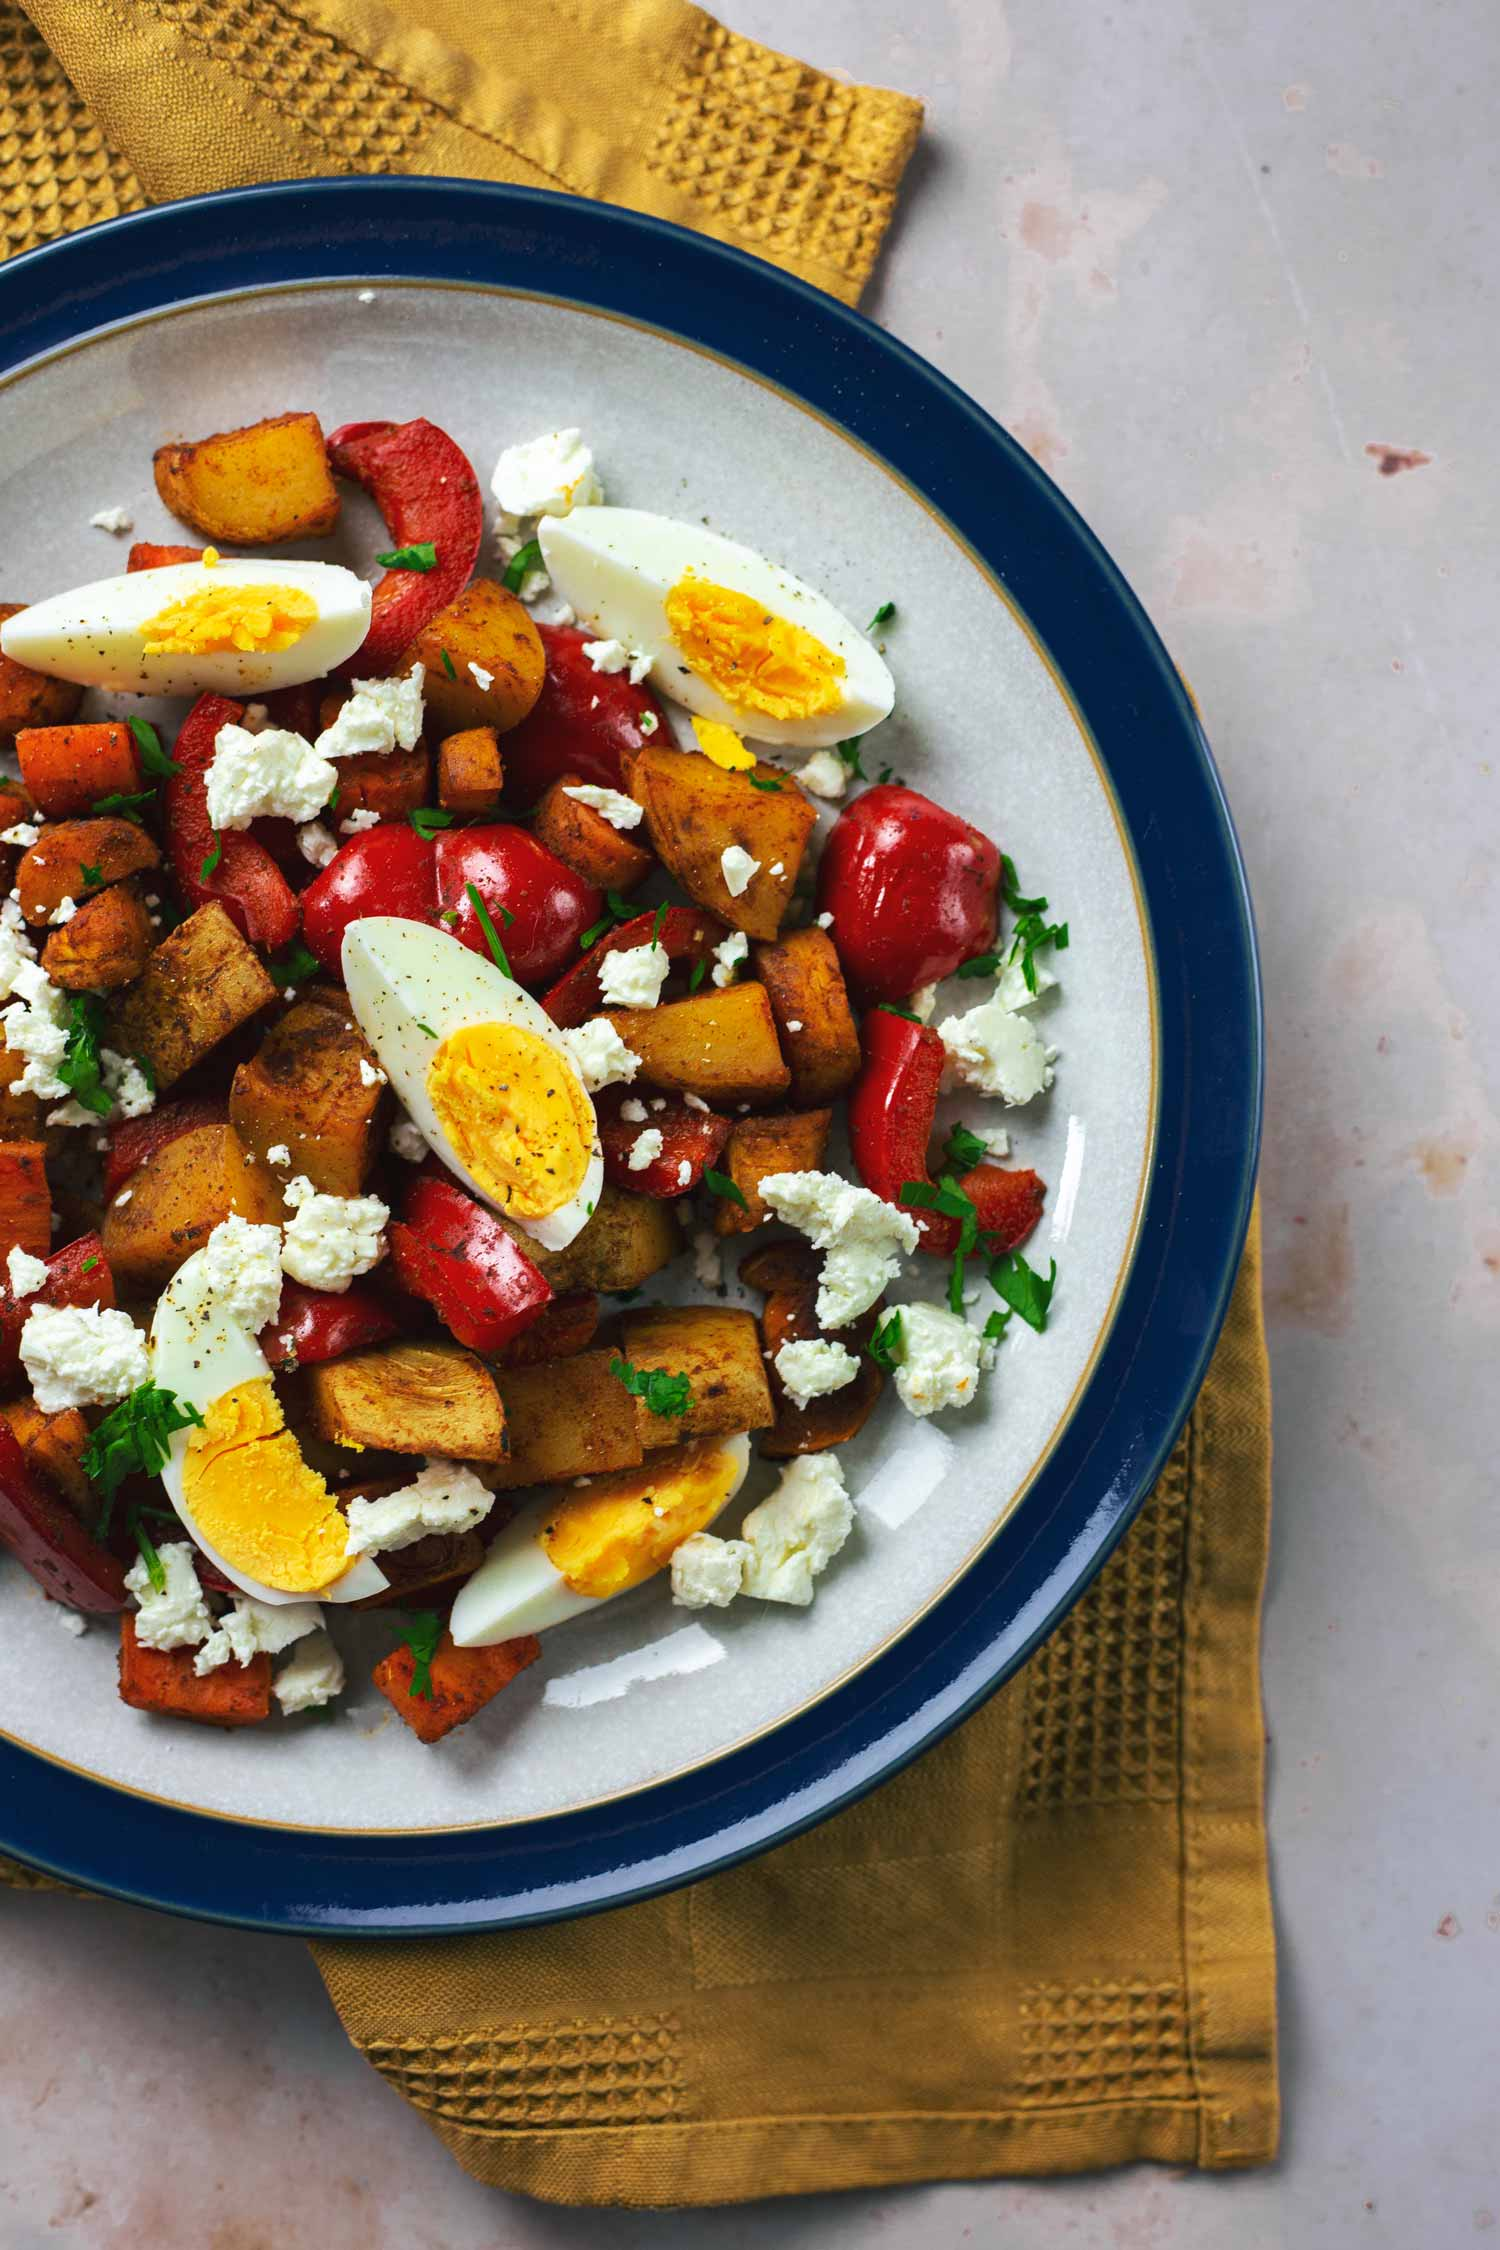 A plate of vegetables topped with chopped boiled egg and feta cheese